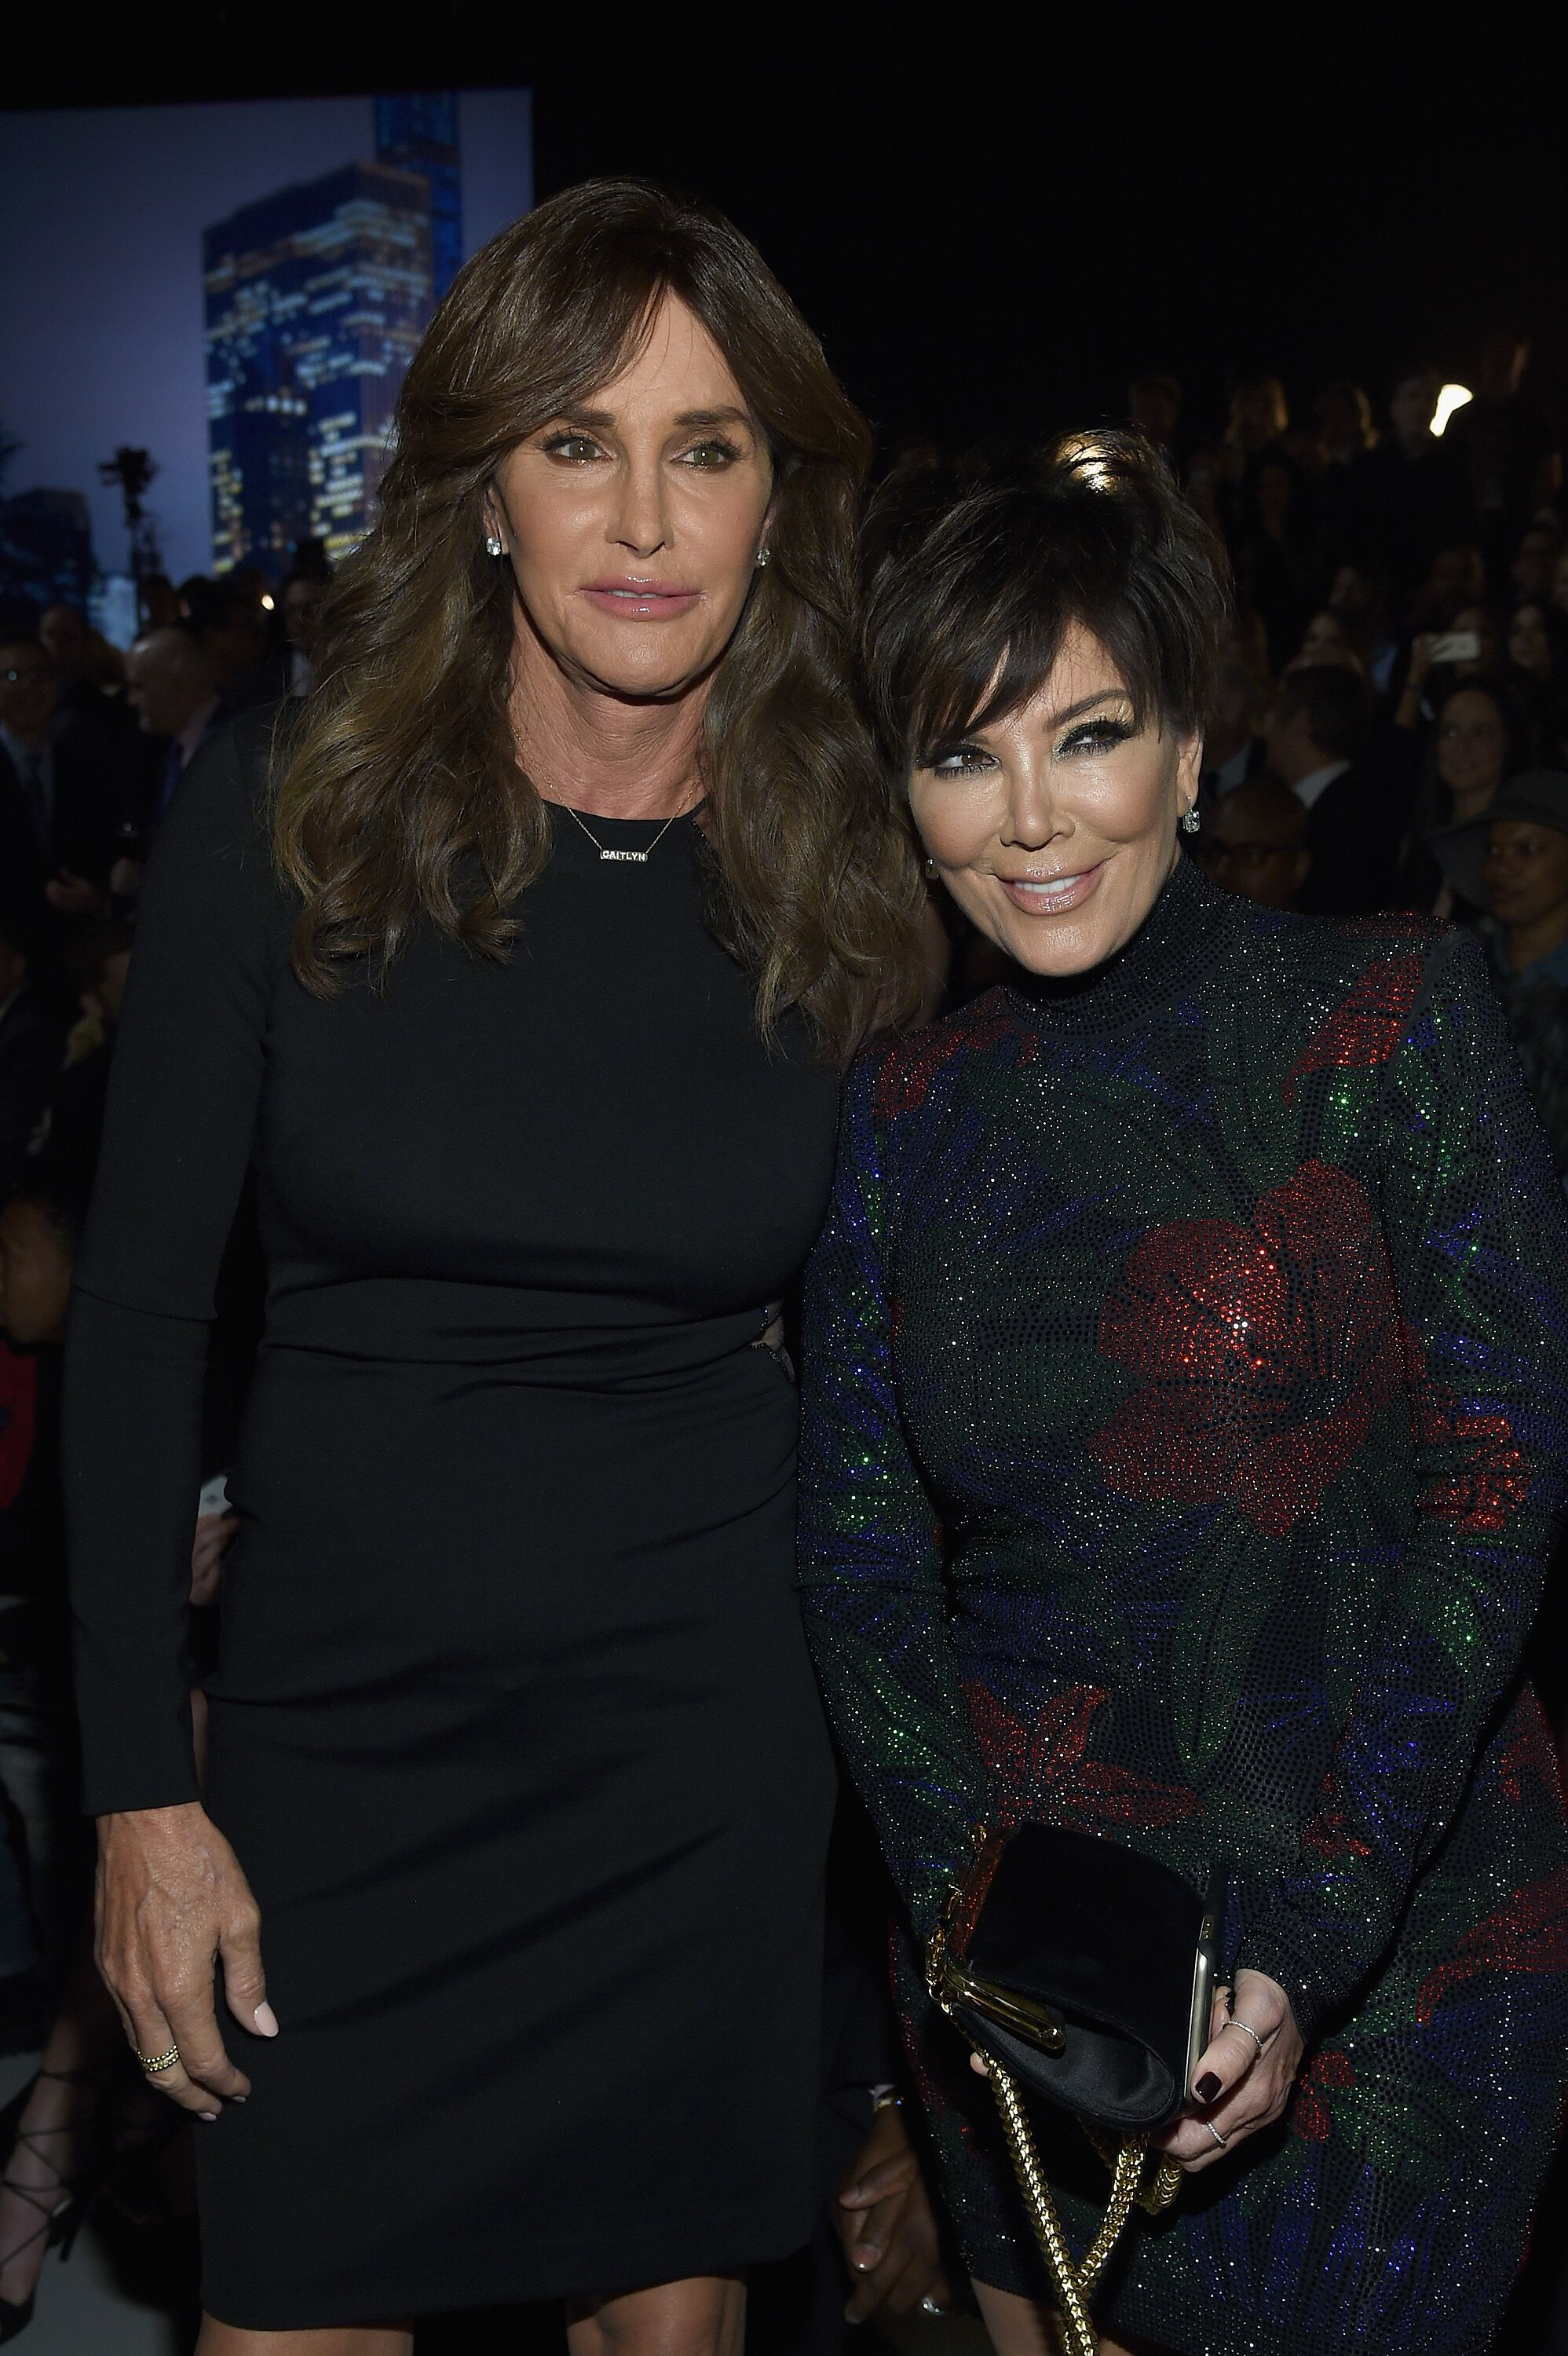 Caitlyn Jenner and Kris Jenner attend the 2015 Victoria's Secret Fashion Show | Source: Getty Images